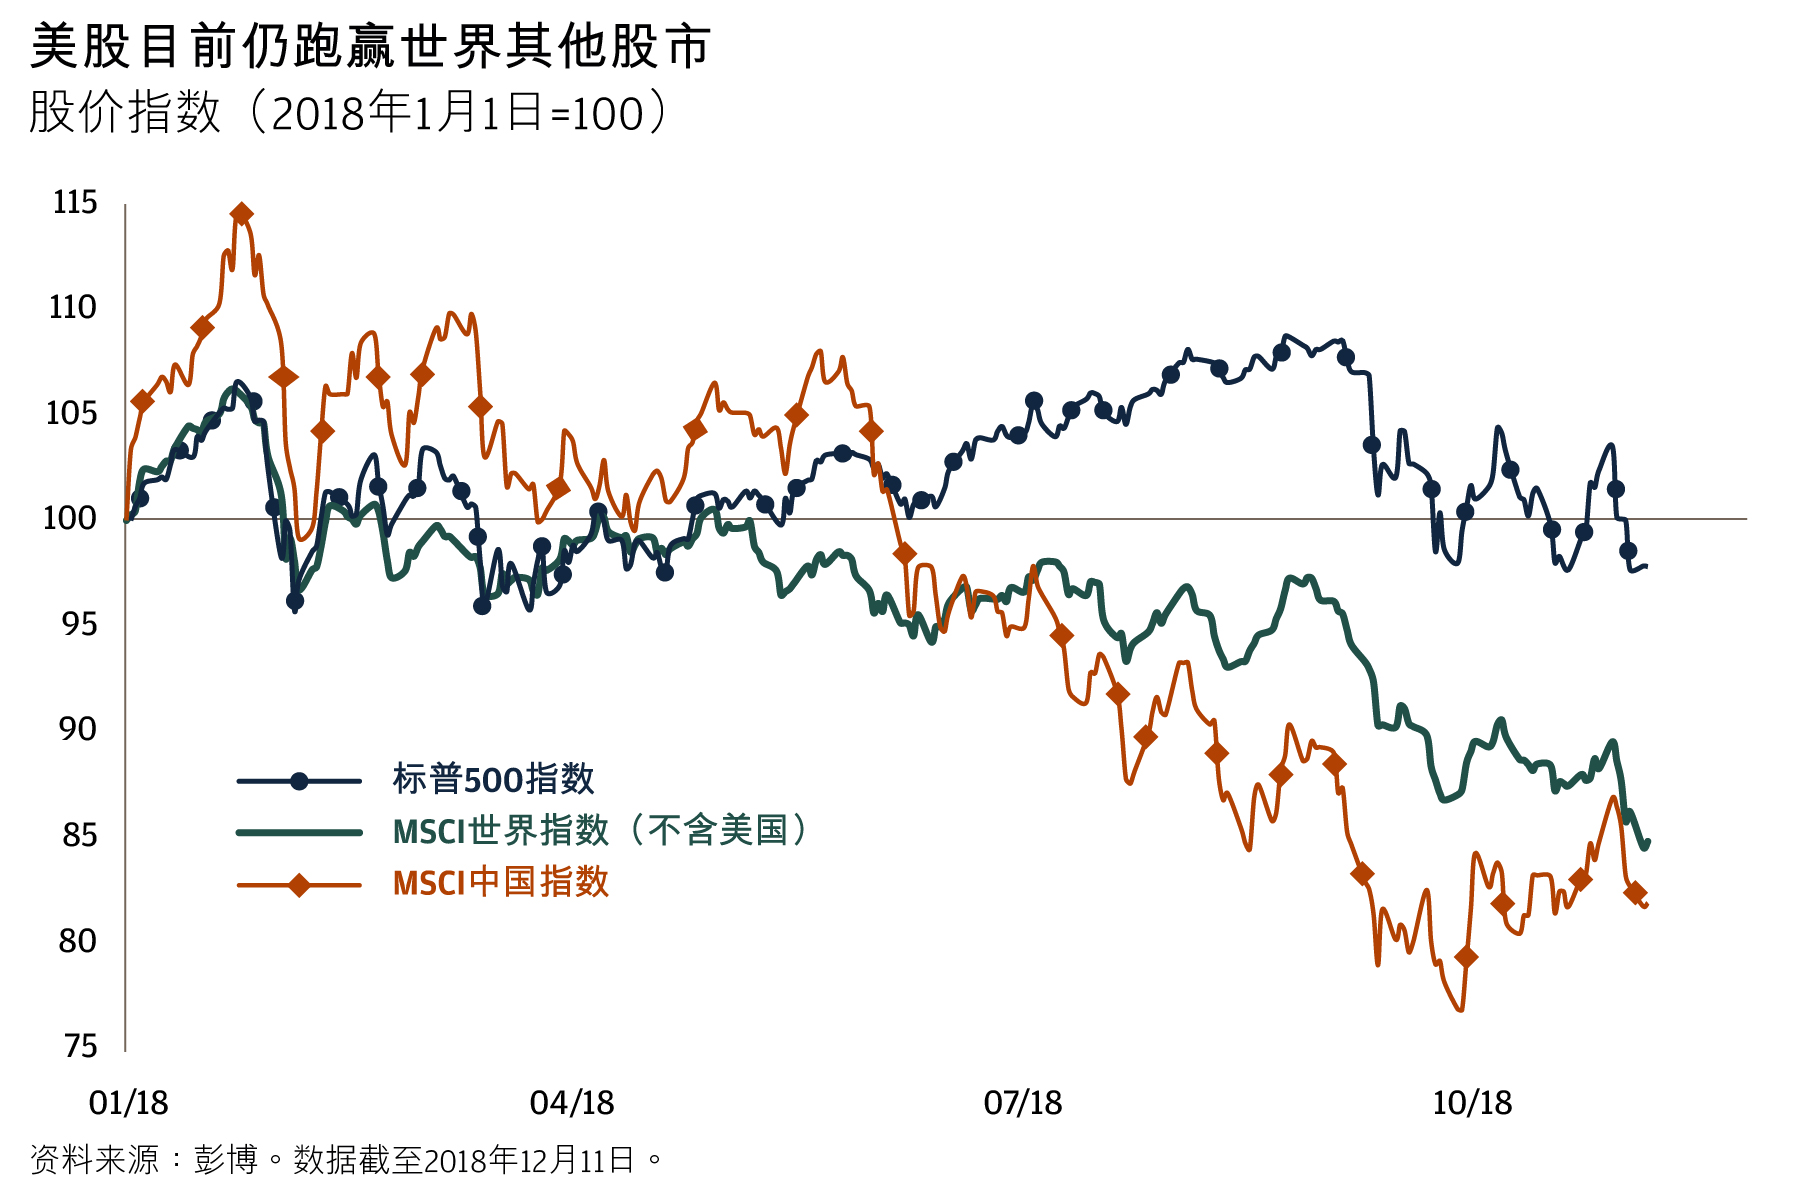 U.S. still outperforming the rest of the world . Line chart compares the S&P 500, MSCI World ex-U.S. and MSCI China from January 1 to December 11, 2018. While all three lines have decreased, MSCI World ex-U.S. and MSCI China have fallen more dramatically than the S&P 500.